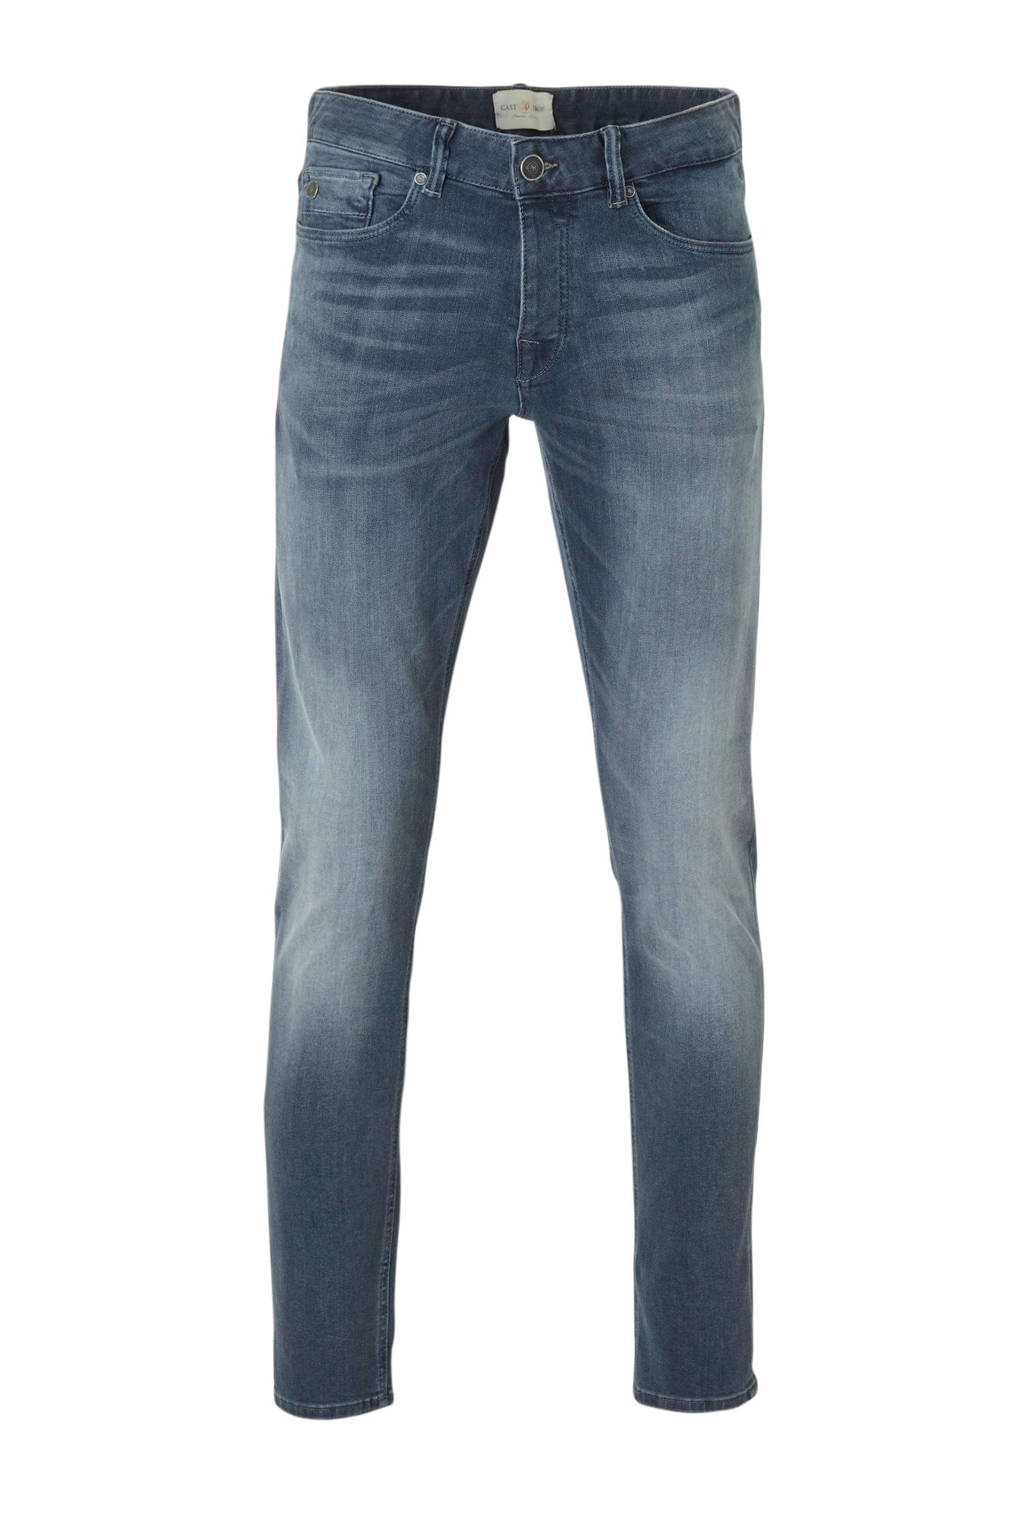 Cast Iron tapered fit jeans Cope into the dust, Into The Dust